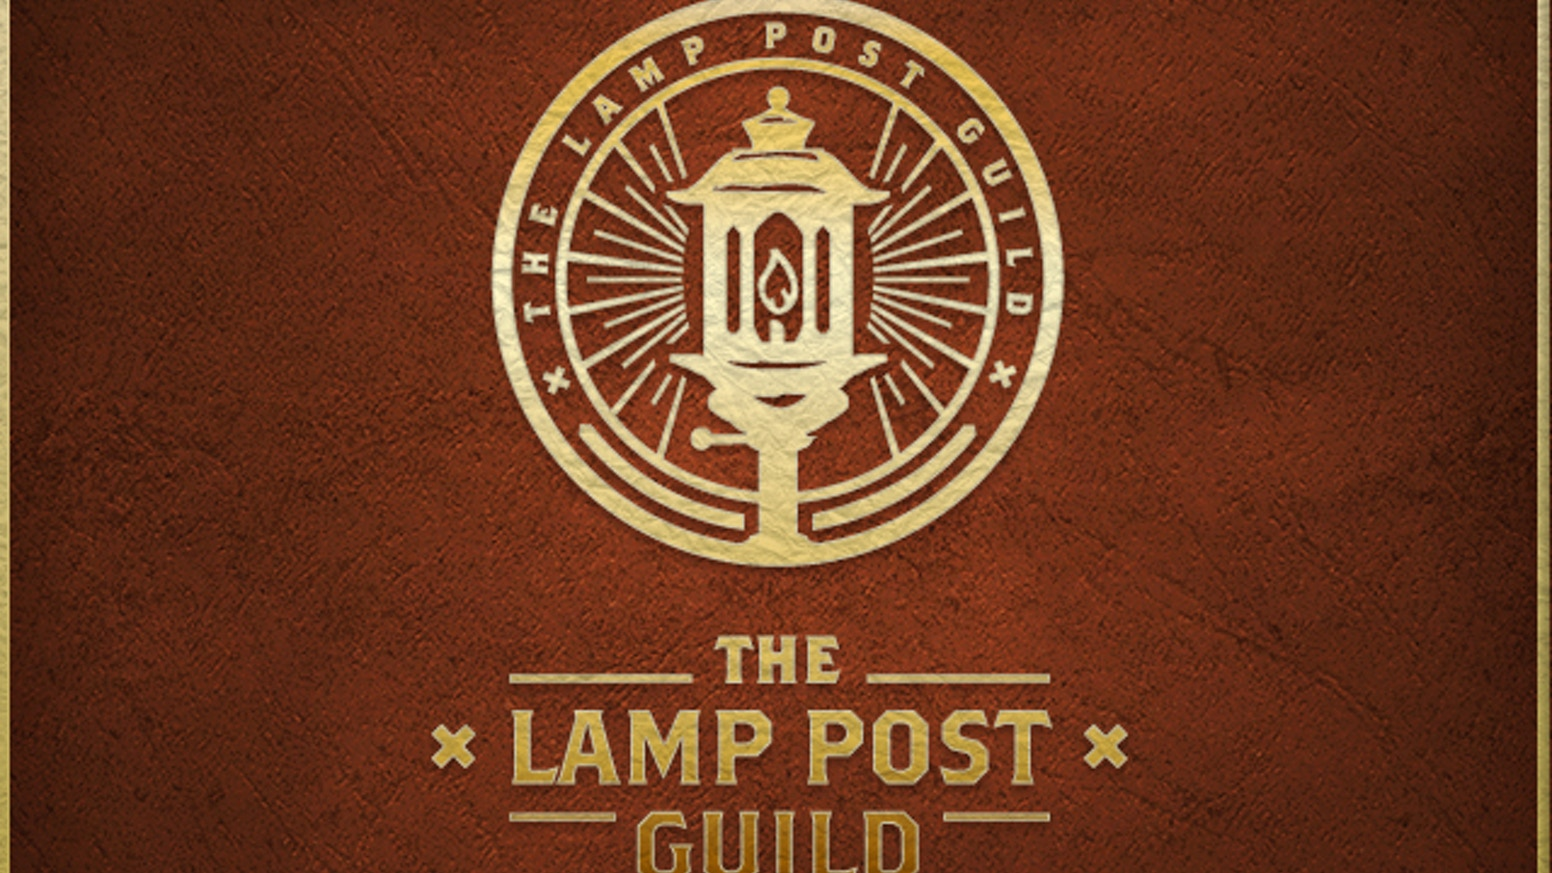 The lamp post guild by pathwright press kickstarter our mission is to teach professional illustration to aspiring artists and help them make a living biocorpaavc Choice Image